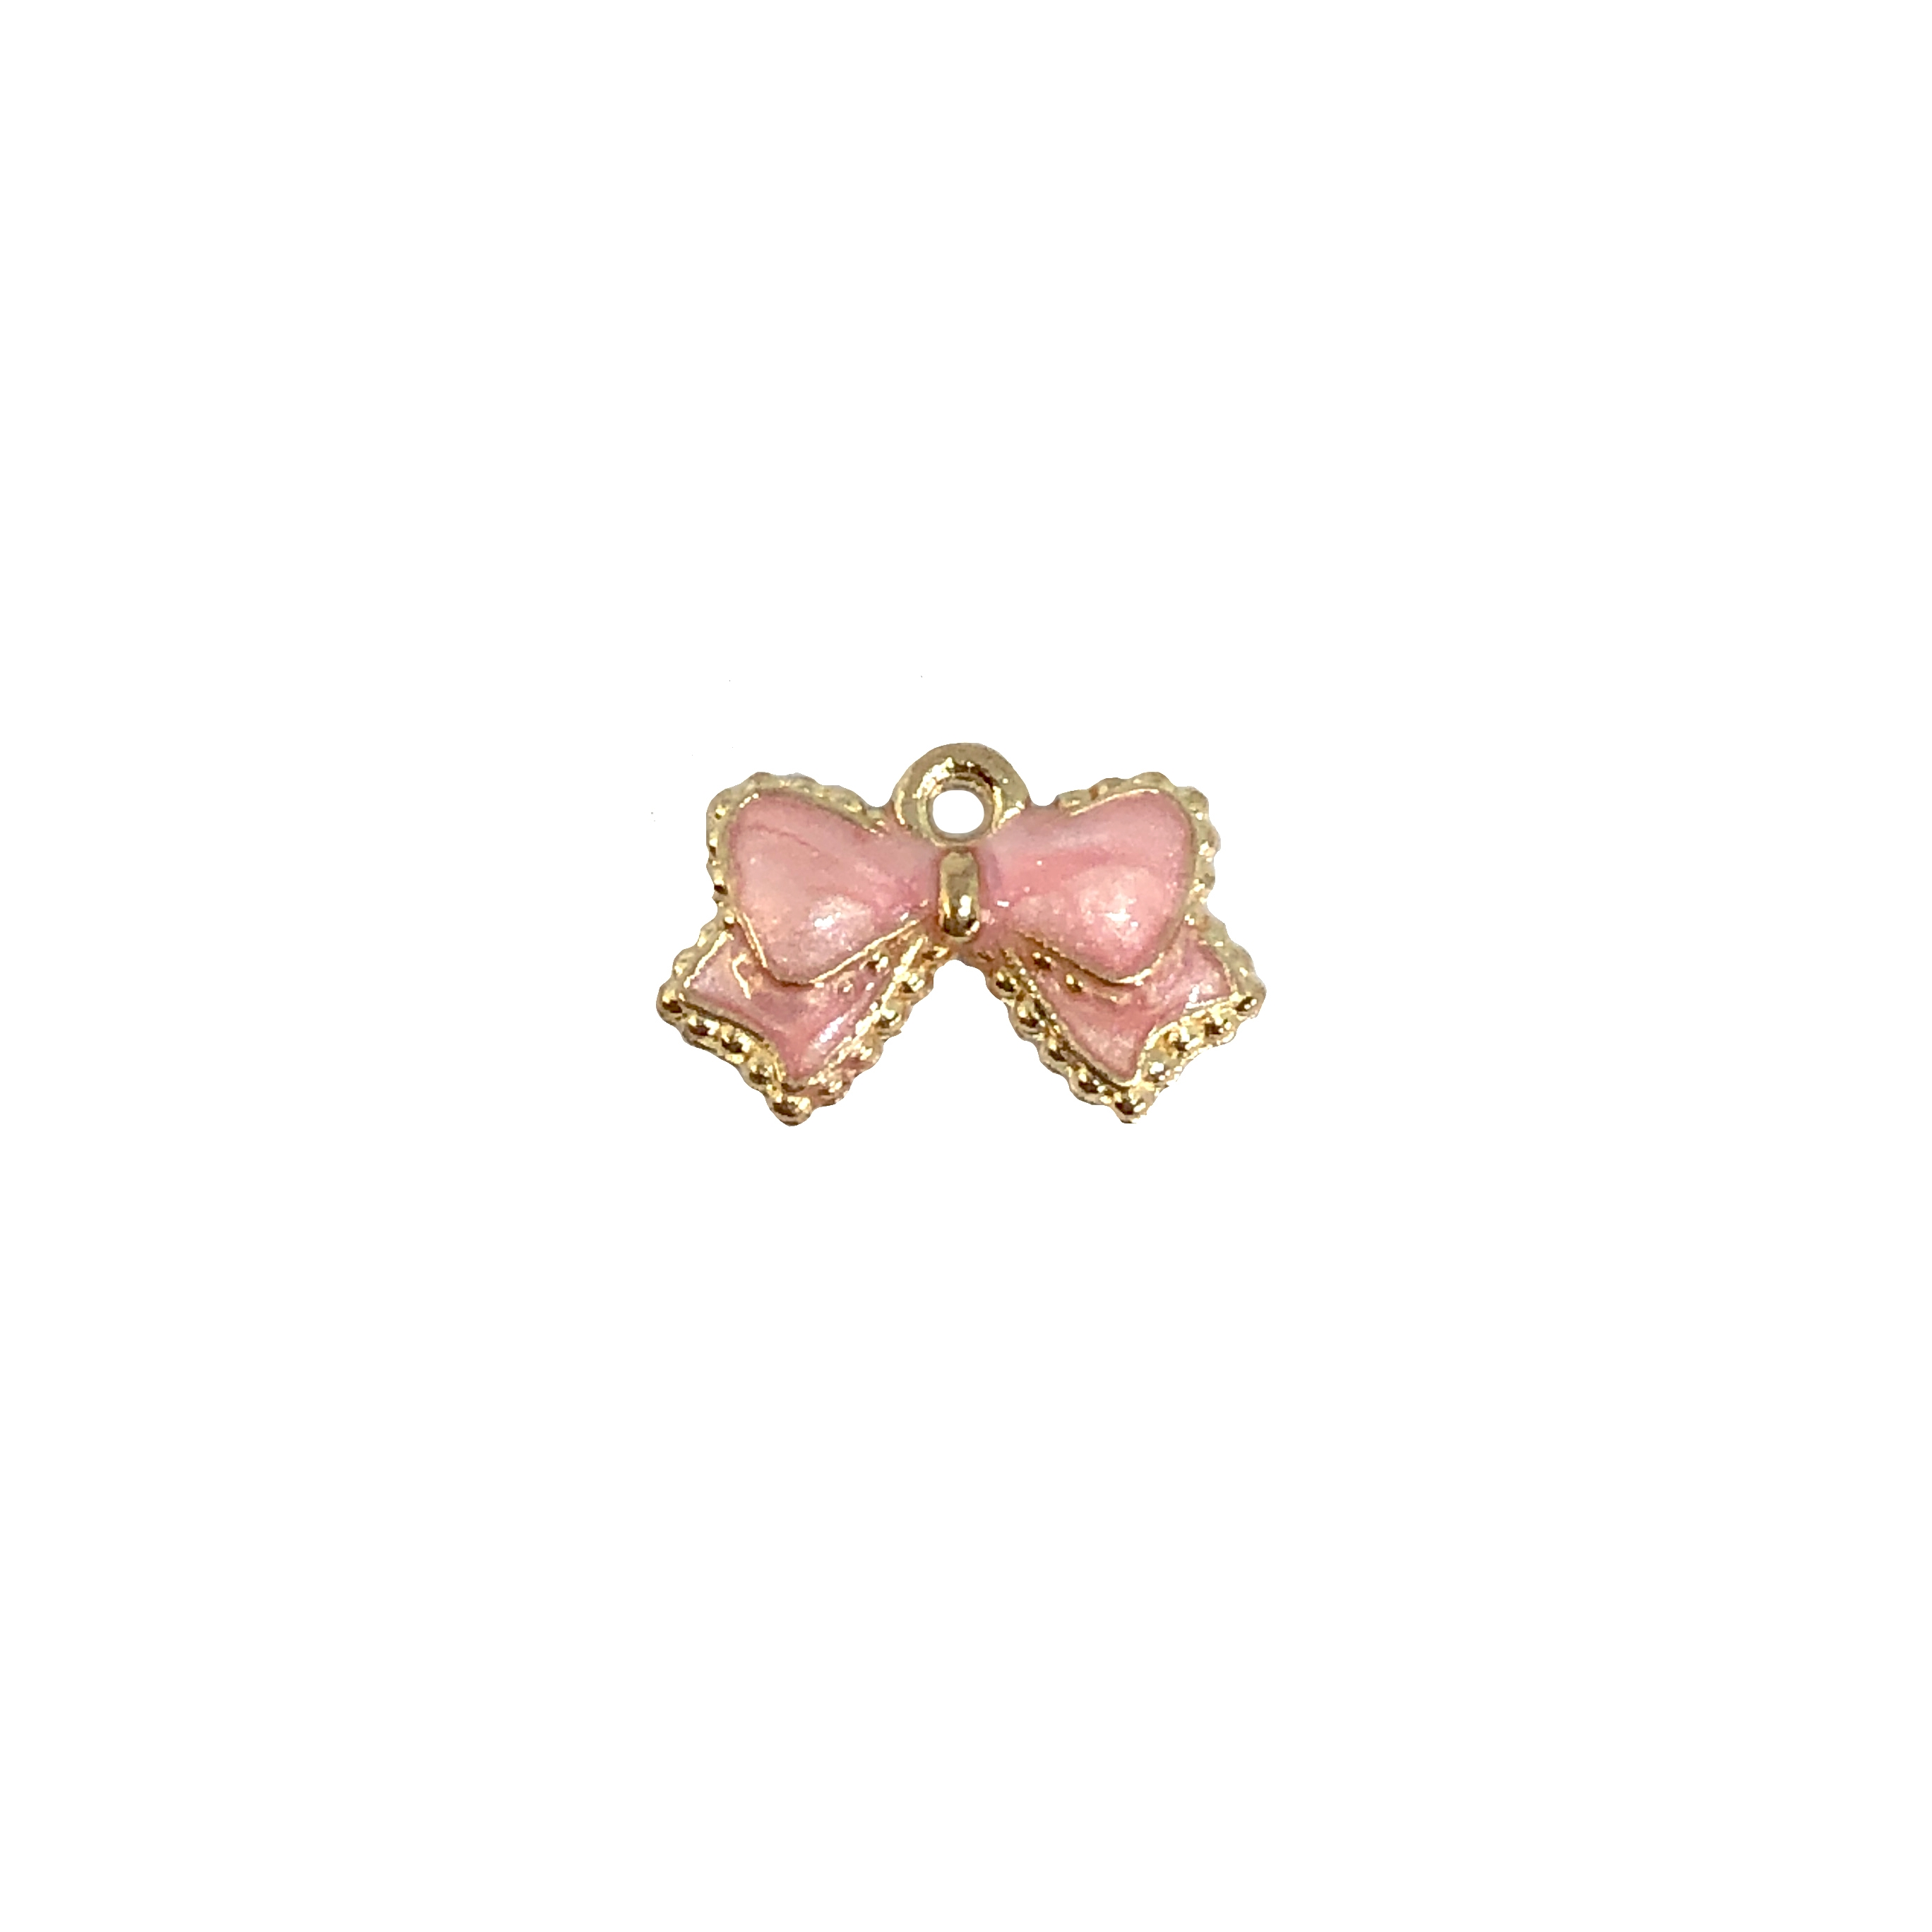 bow charms, pink bow, gold plated, 08885, zinc alloy, pink enameling, enamel, gold bow, bow, bow charm, charm, pink, Bsue Boutiques, jewelry findings, jewelry supplies, charms